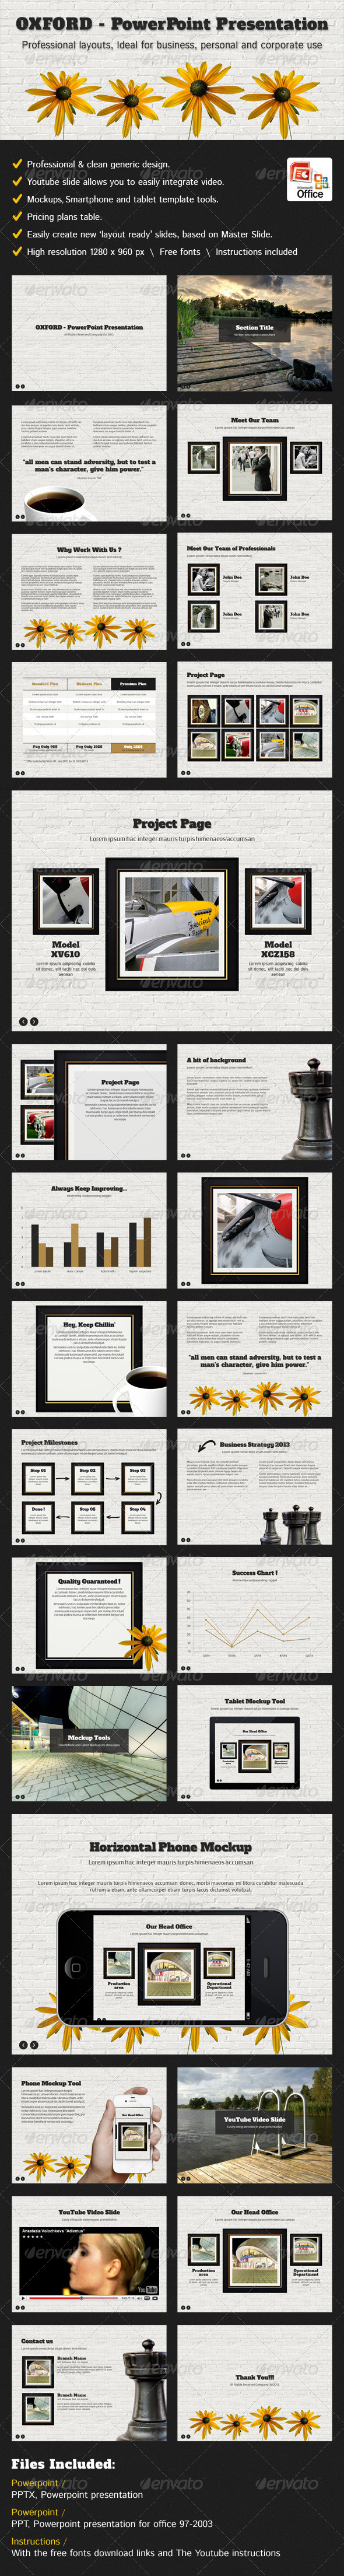 Oxford - PowerPoint Presentation For General Use - Business Powerpoint Templates